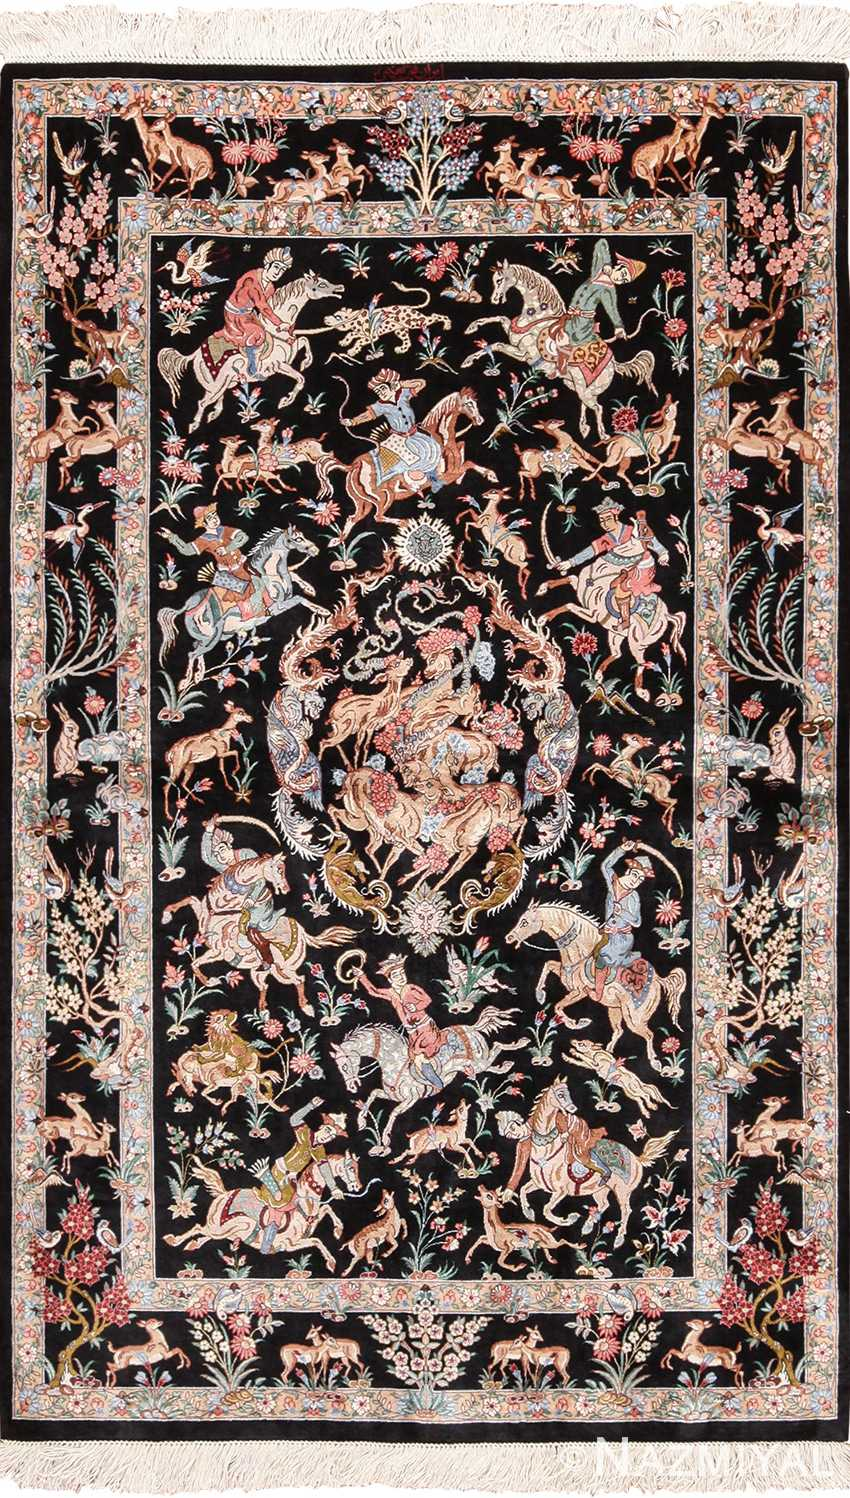 Small Hunting Scene Vintage Persian Silk Qum Rug 49624 by Nazmiyal